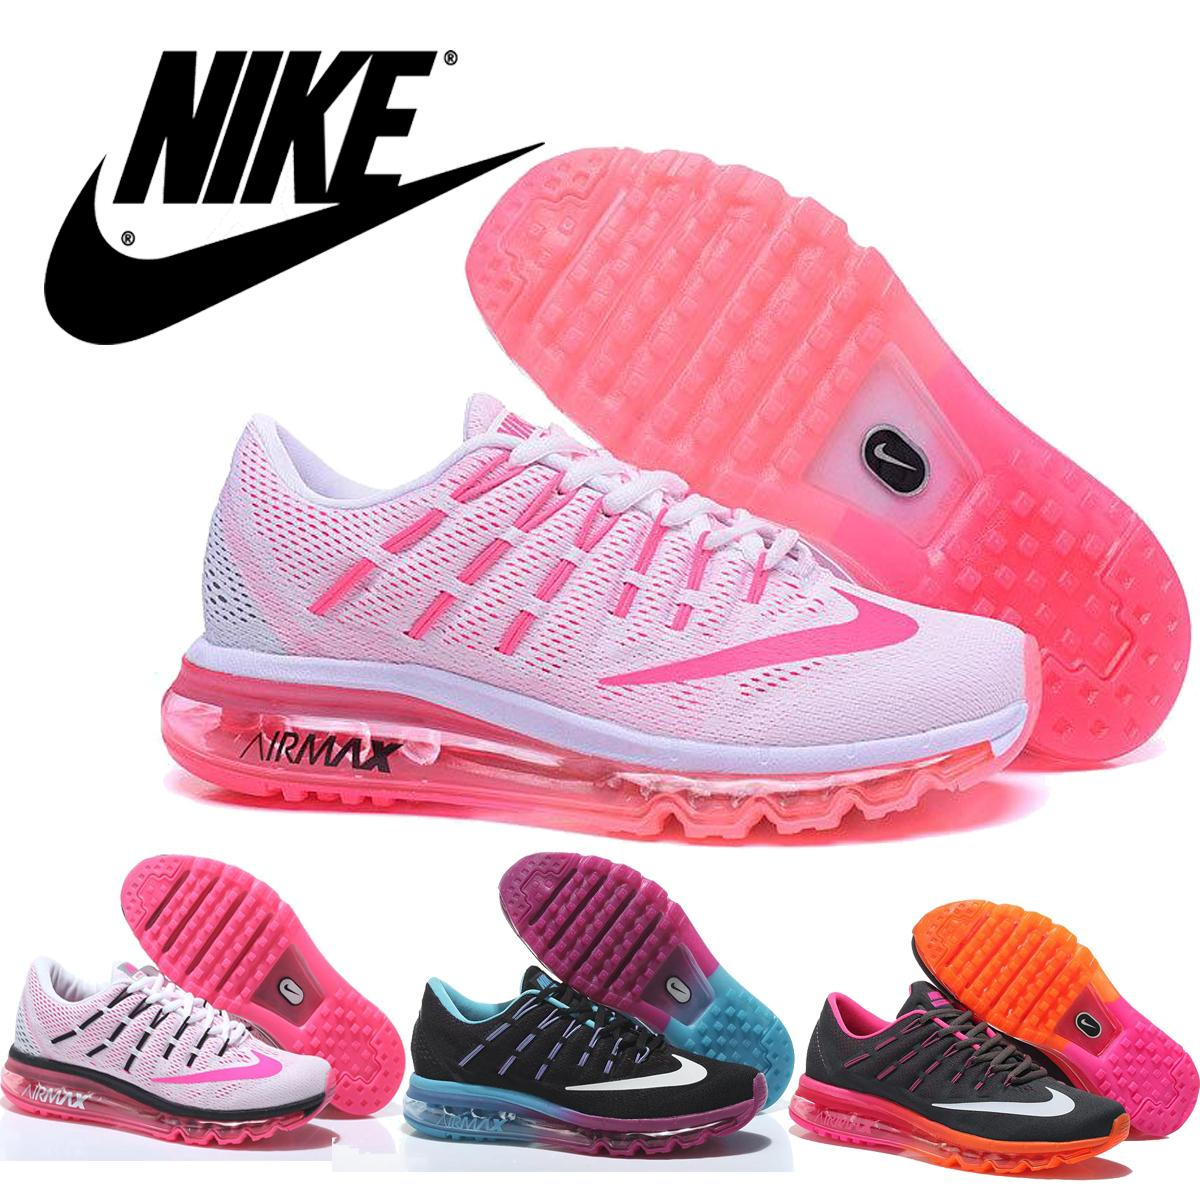 Nike Air Max 2016 Mesh Women'S Running Shoes,Wholesale Discount Original Nike Airmax 2016 For Women Shoes Maxes Athletic Trainers Shoes Stability